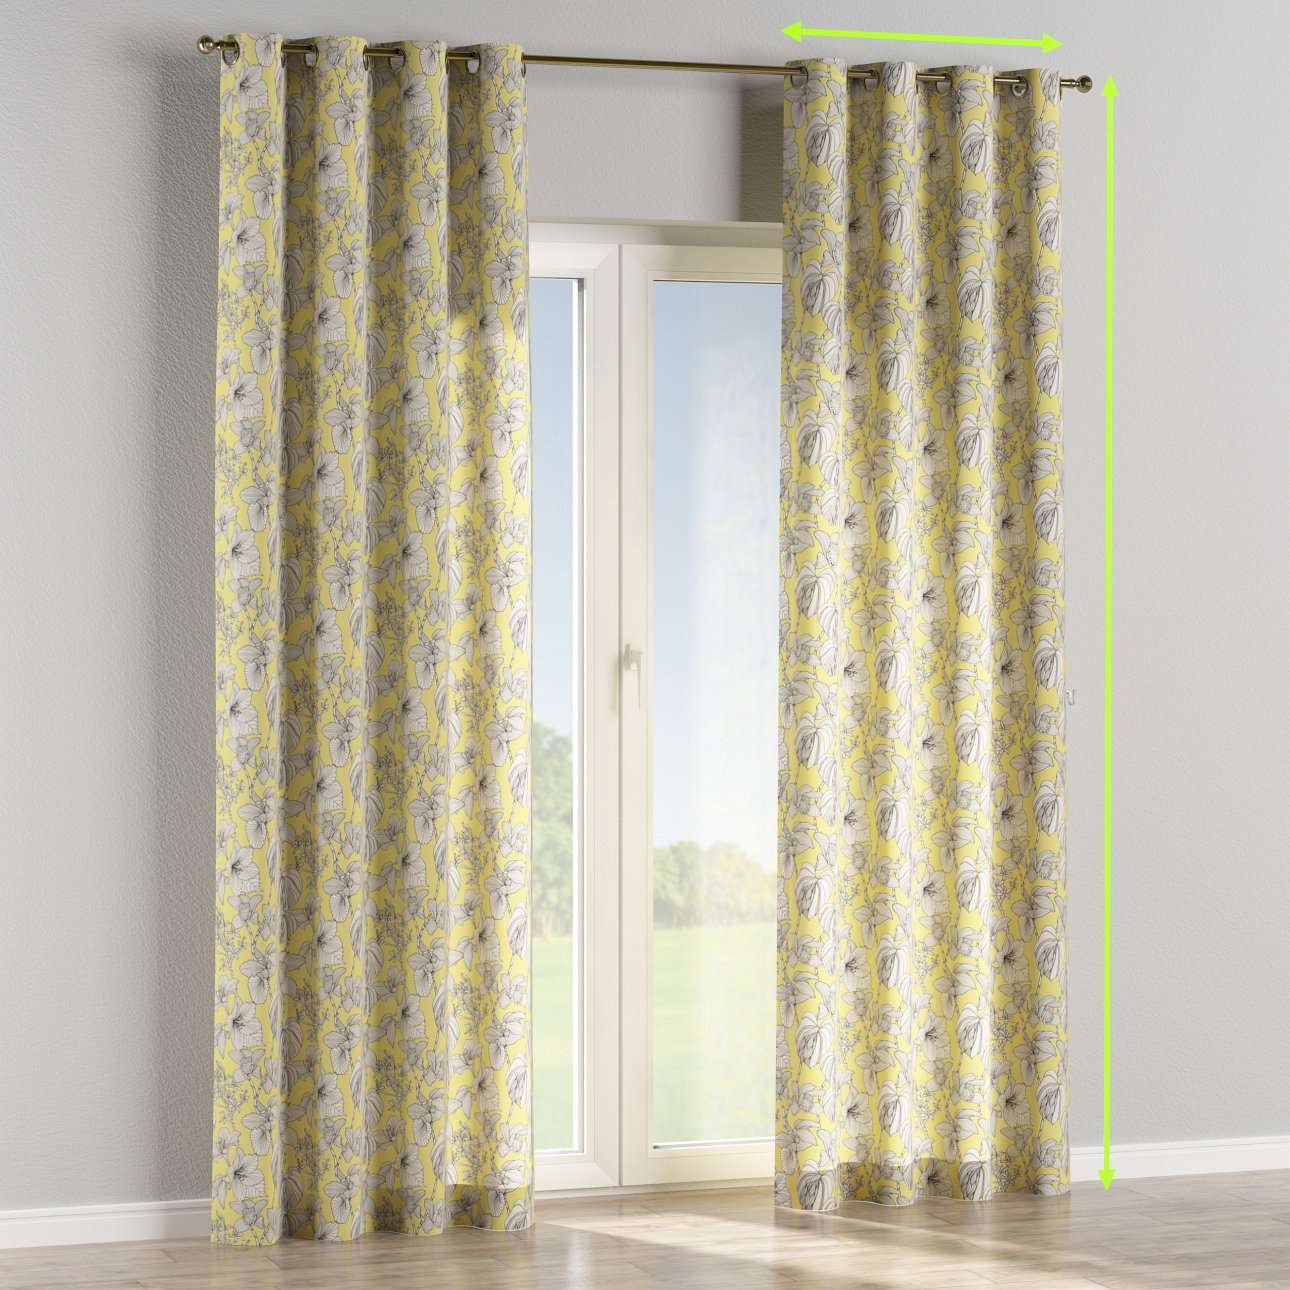 Eyelet curtains in collection Brooklyn, fabric: 137-78